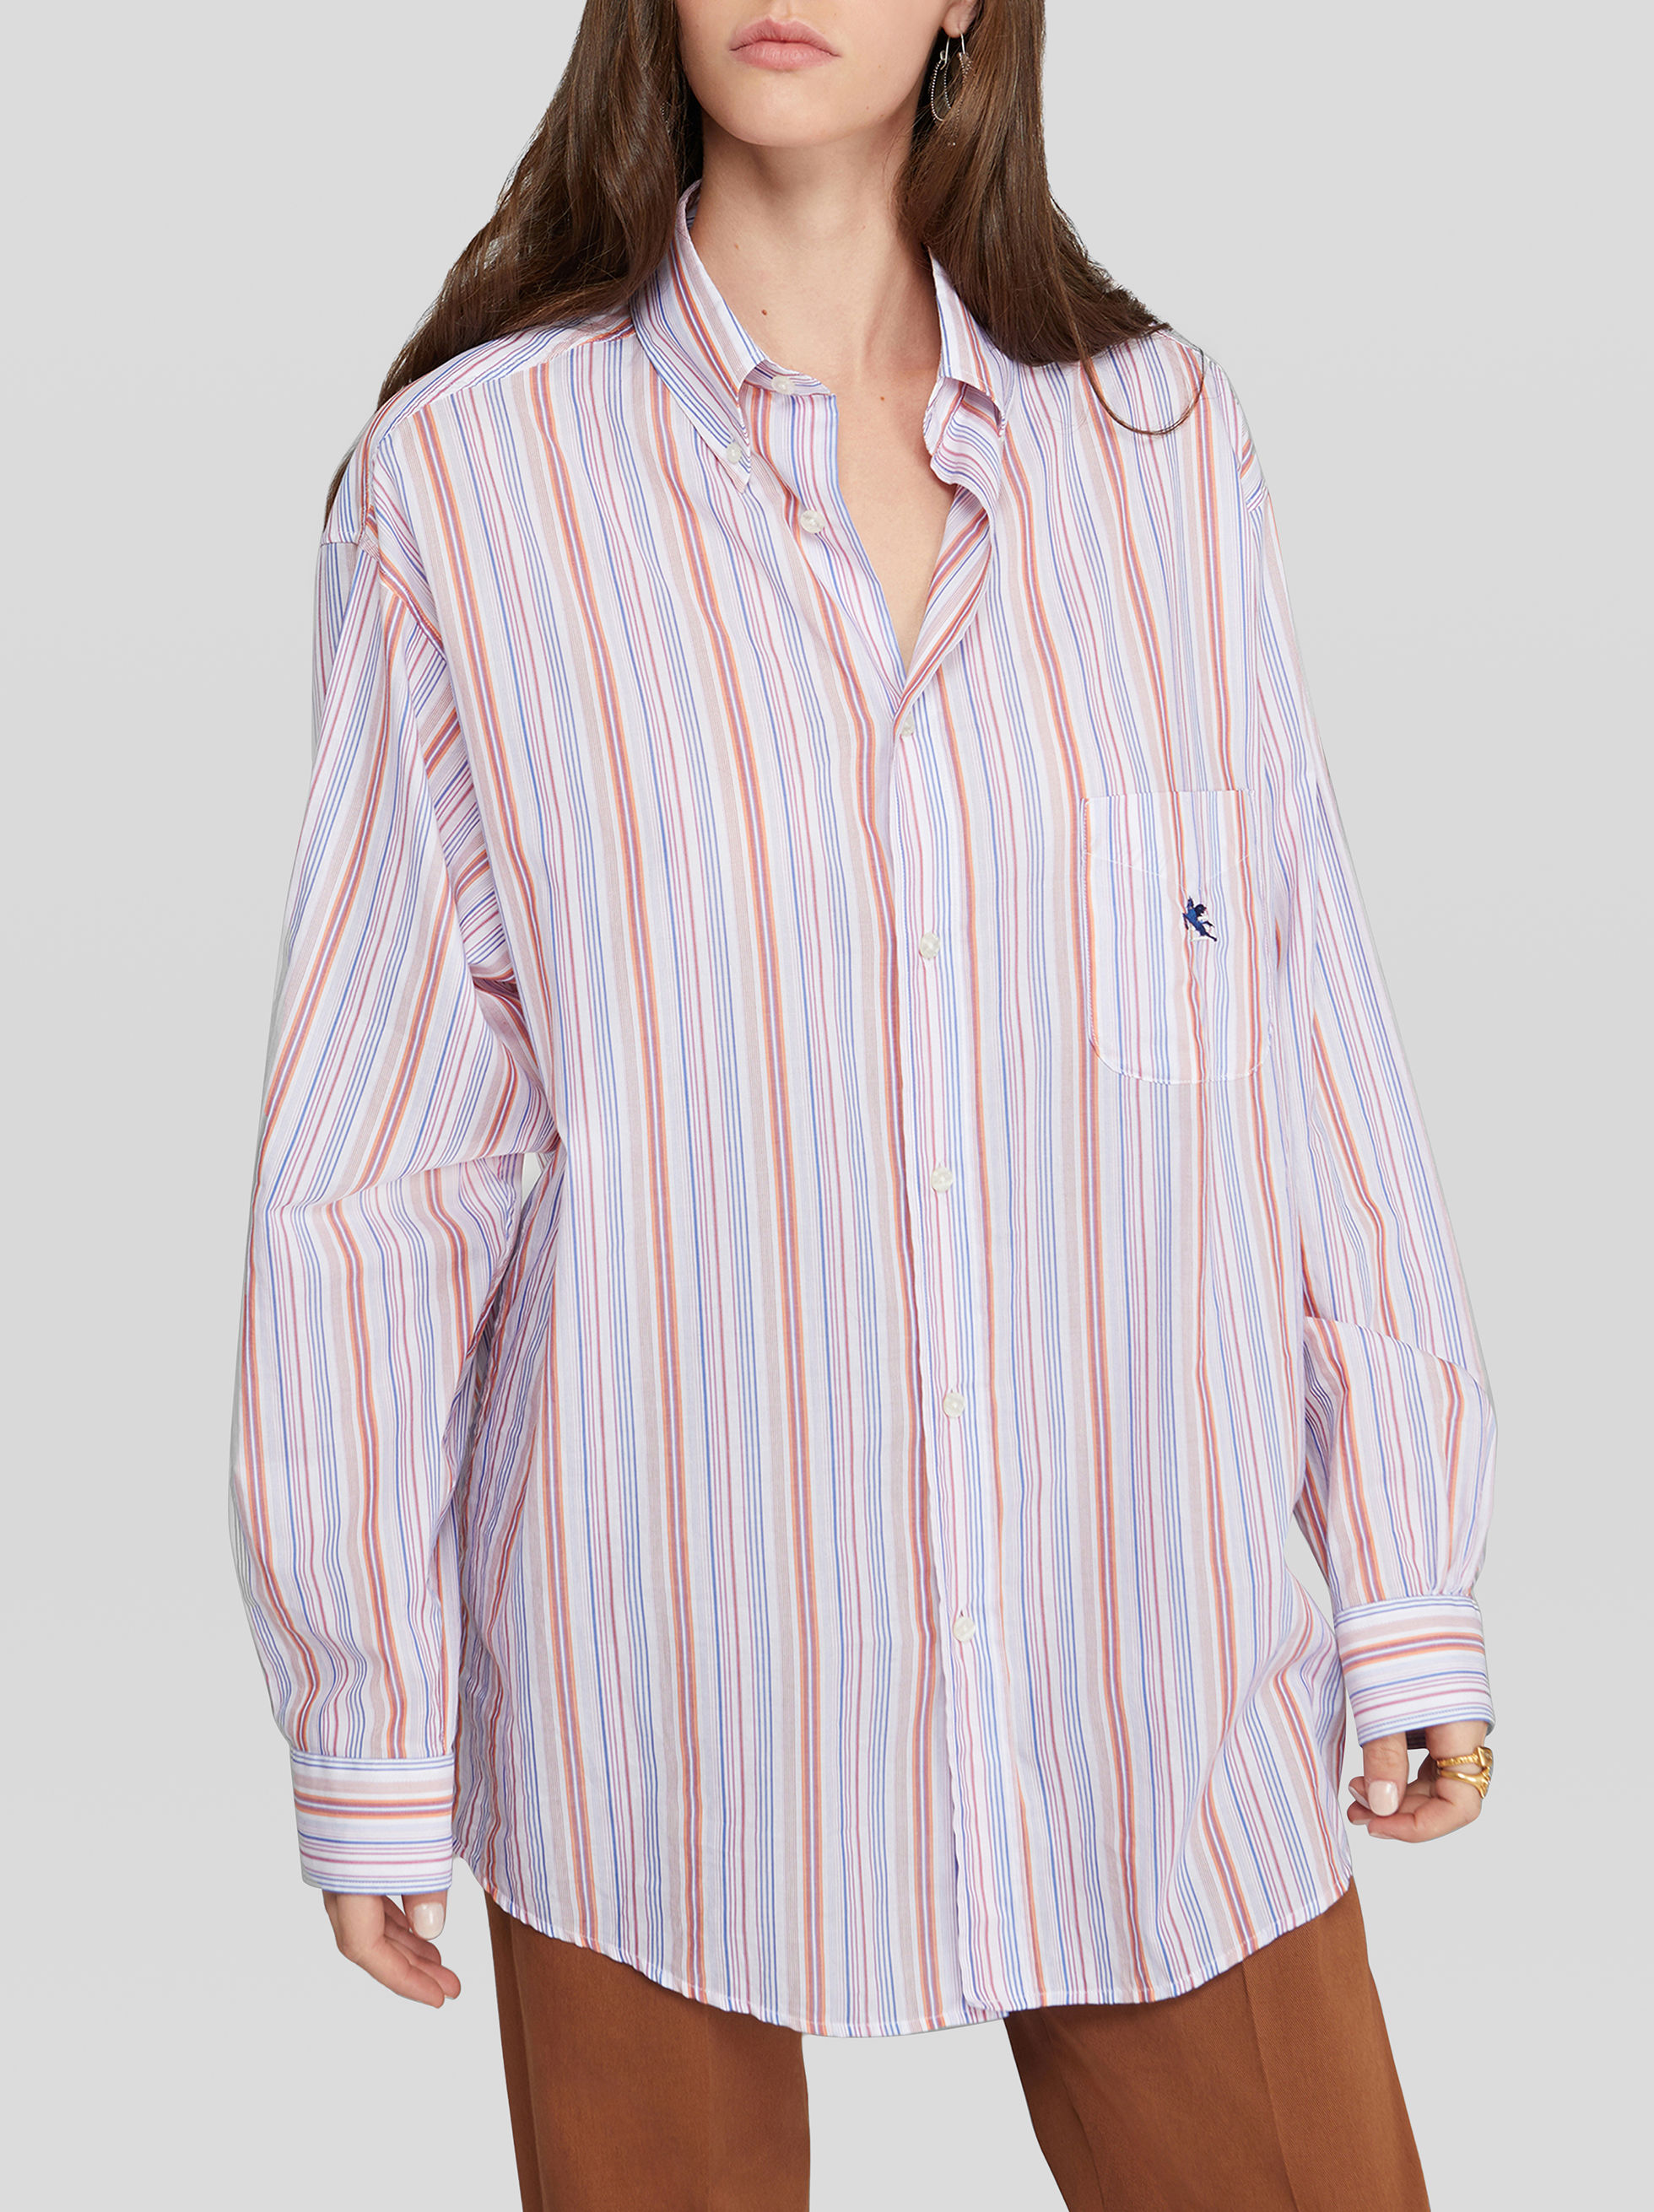 SHIRT IN STRIPED COTTON WITH PEGASO